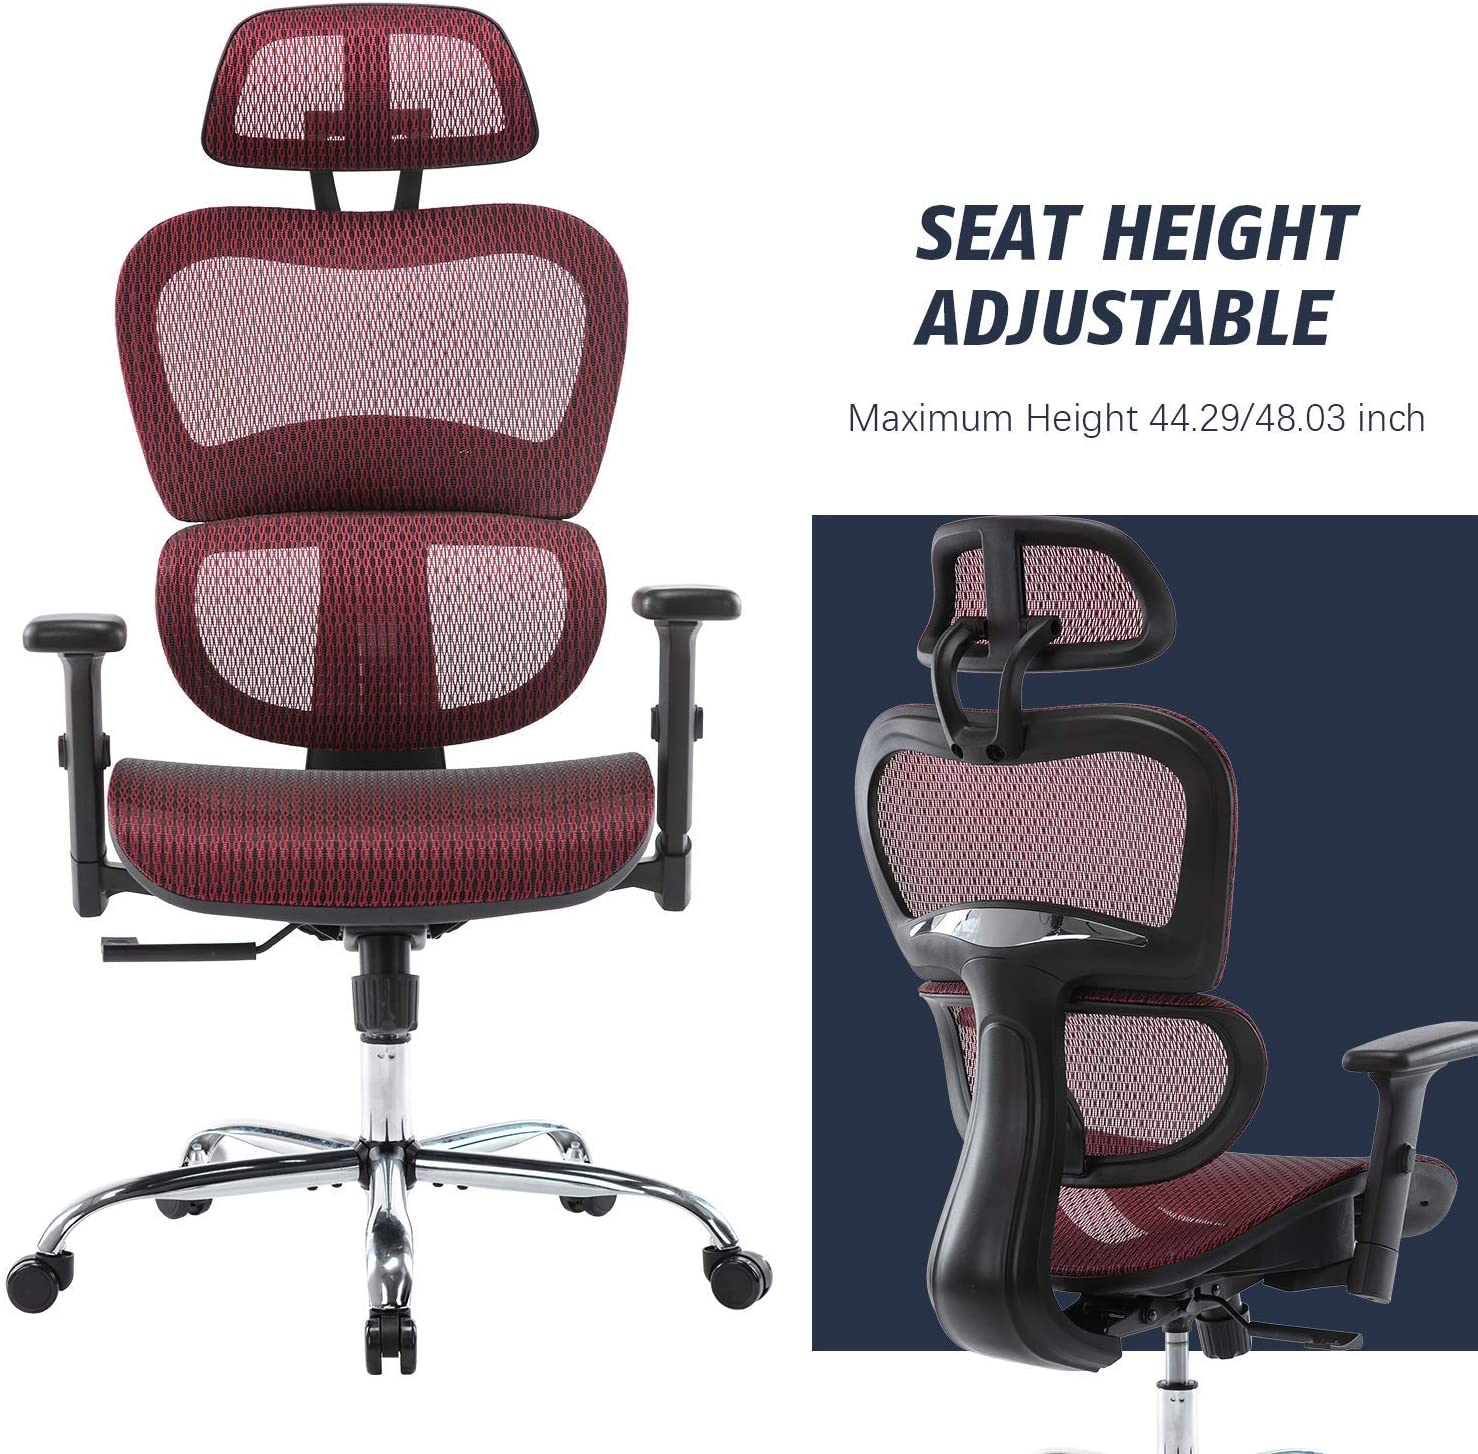 H563618cbe0df42bfb1710c068596670bo - Office Chair Ergonomics Mesh Chair Computer Chair Desk Chair High Back Chair gaming chair With Adjustable Headrest and Armrests